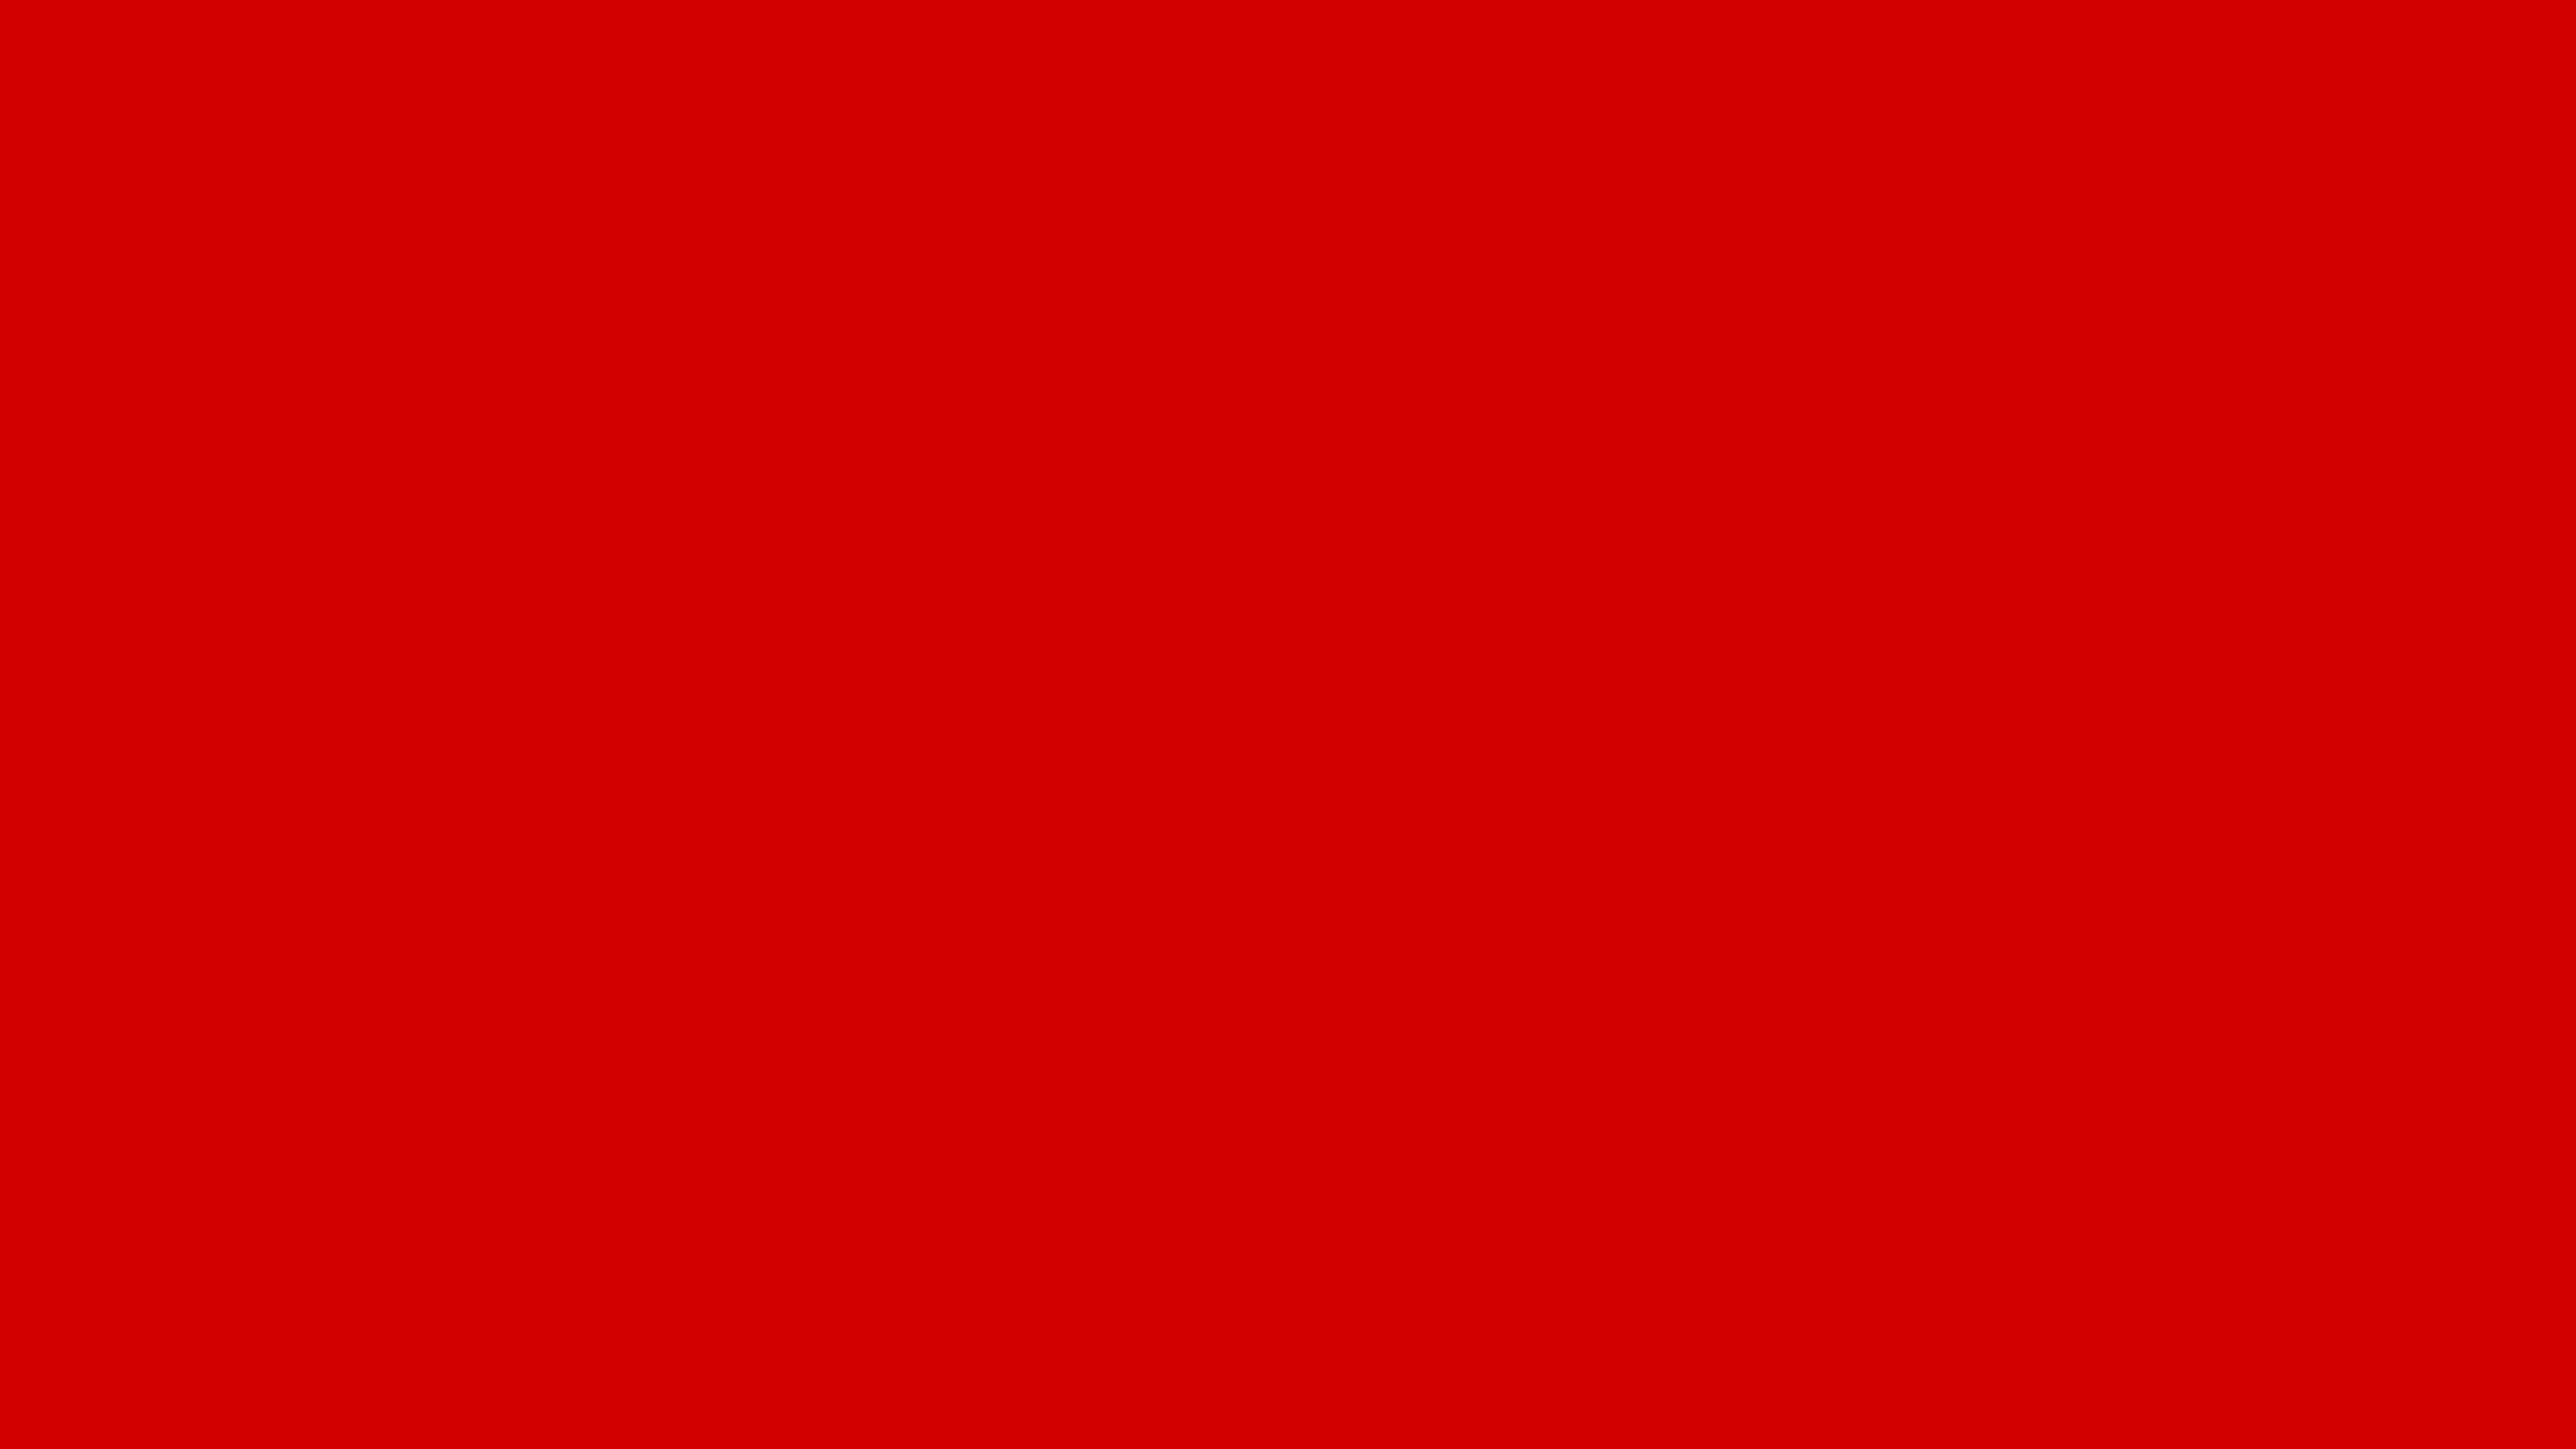 4096x2304 Rosso Corsa Solid Color Background